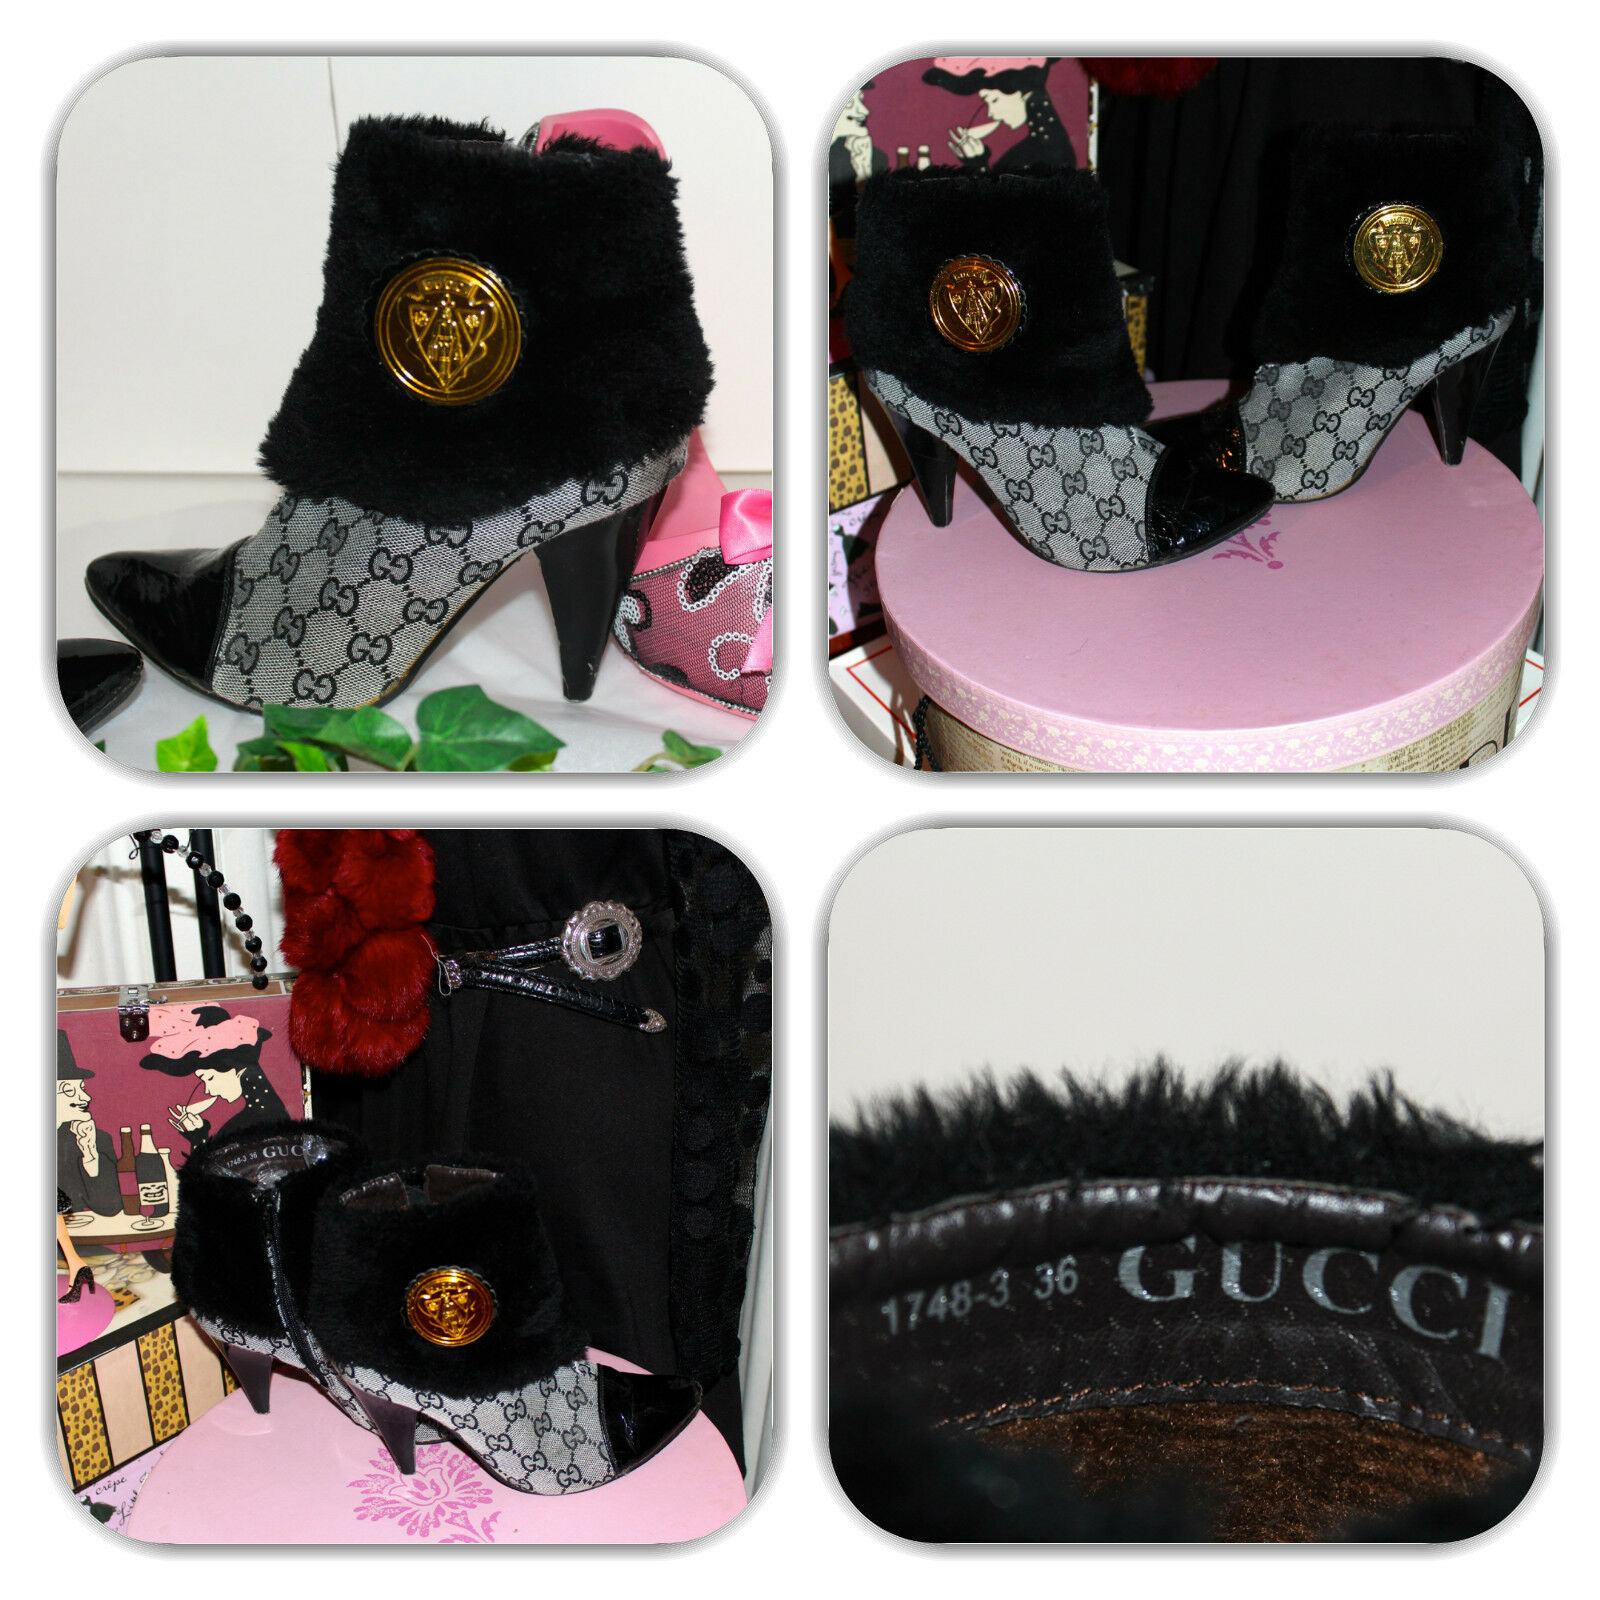 GUCCI GG MONOGRAM BOOTIES SIZE 6 (DIFFERENT & RARE)